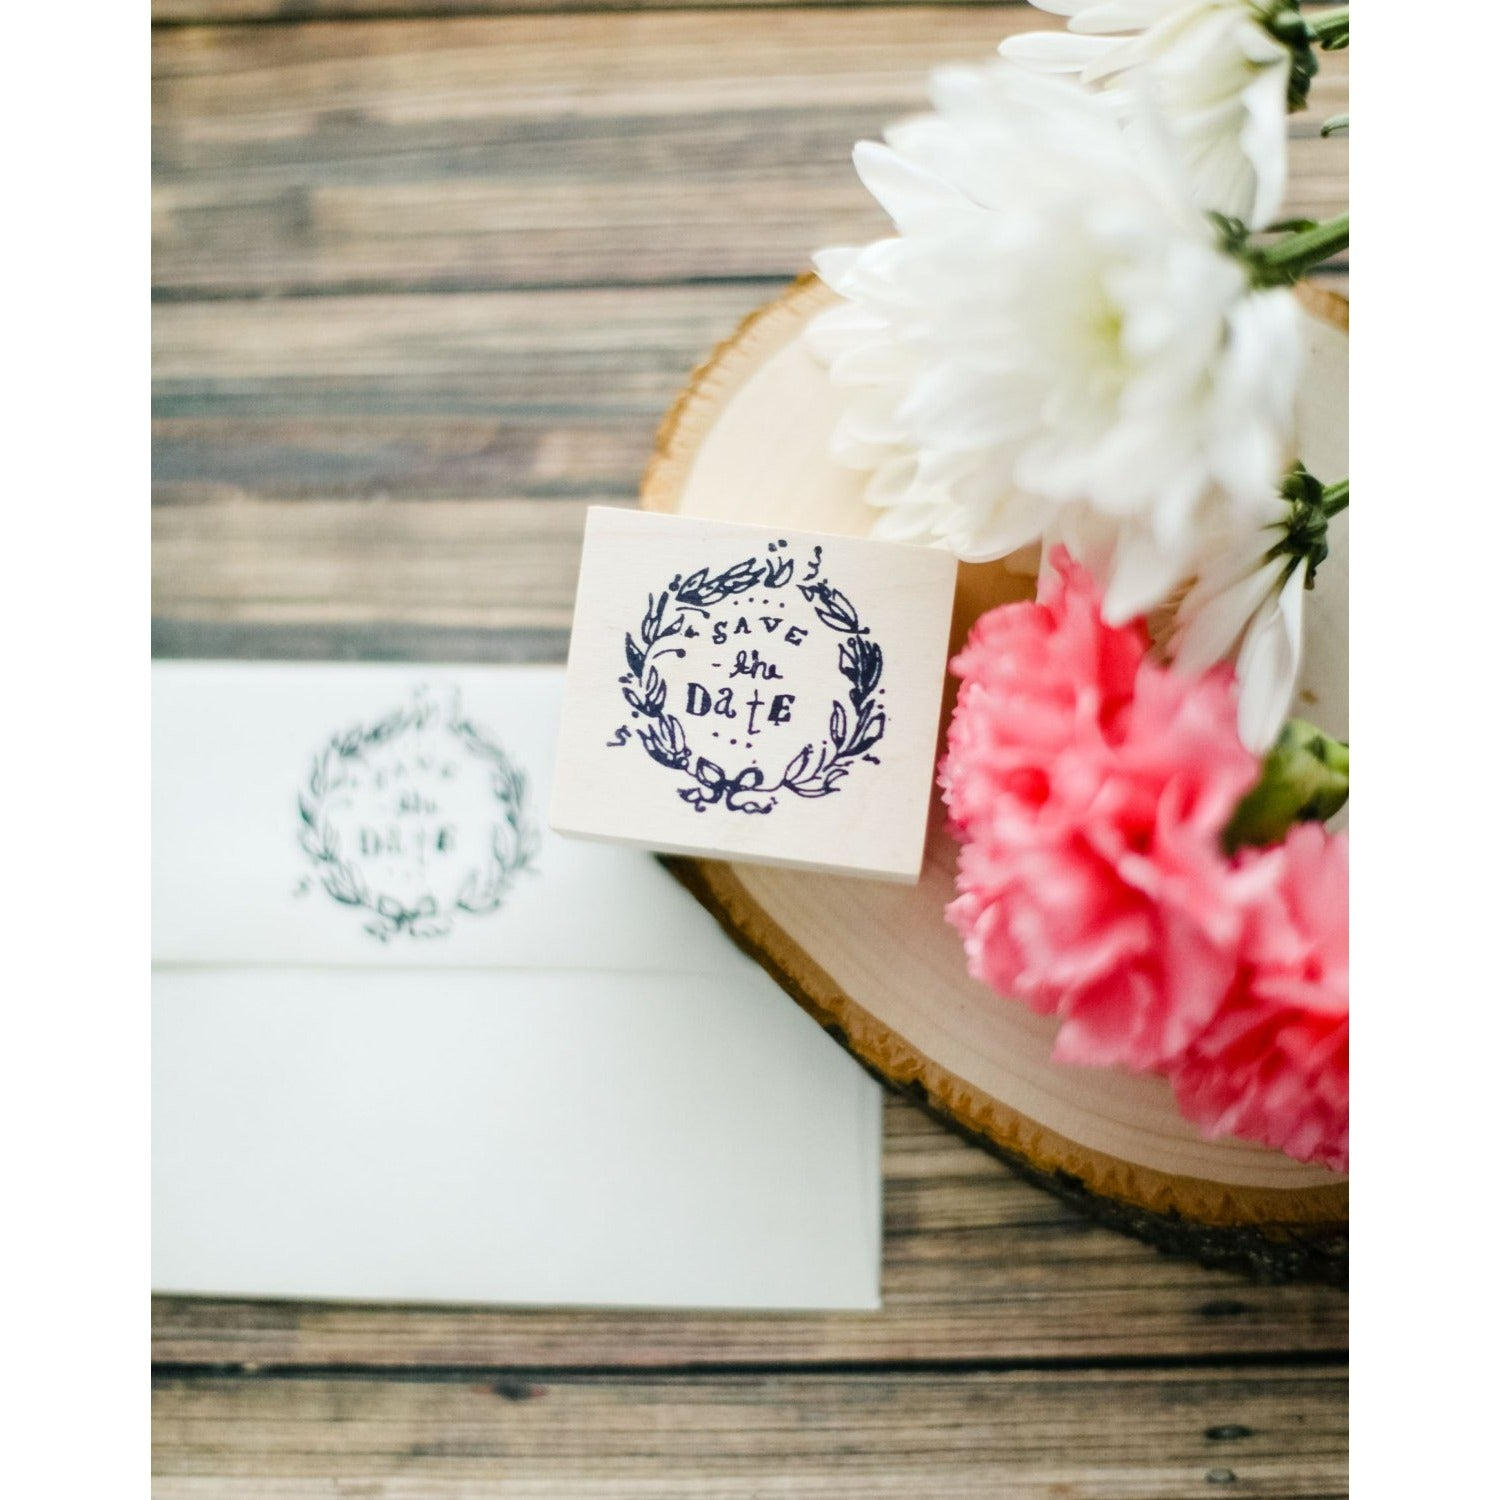 Save the Date Wedding Wreath Rubber Stamp